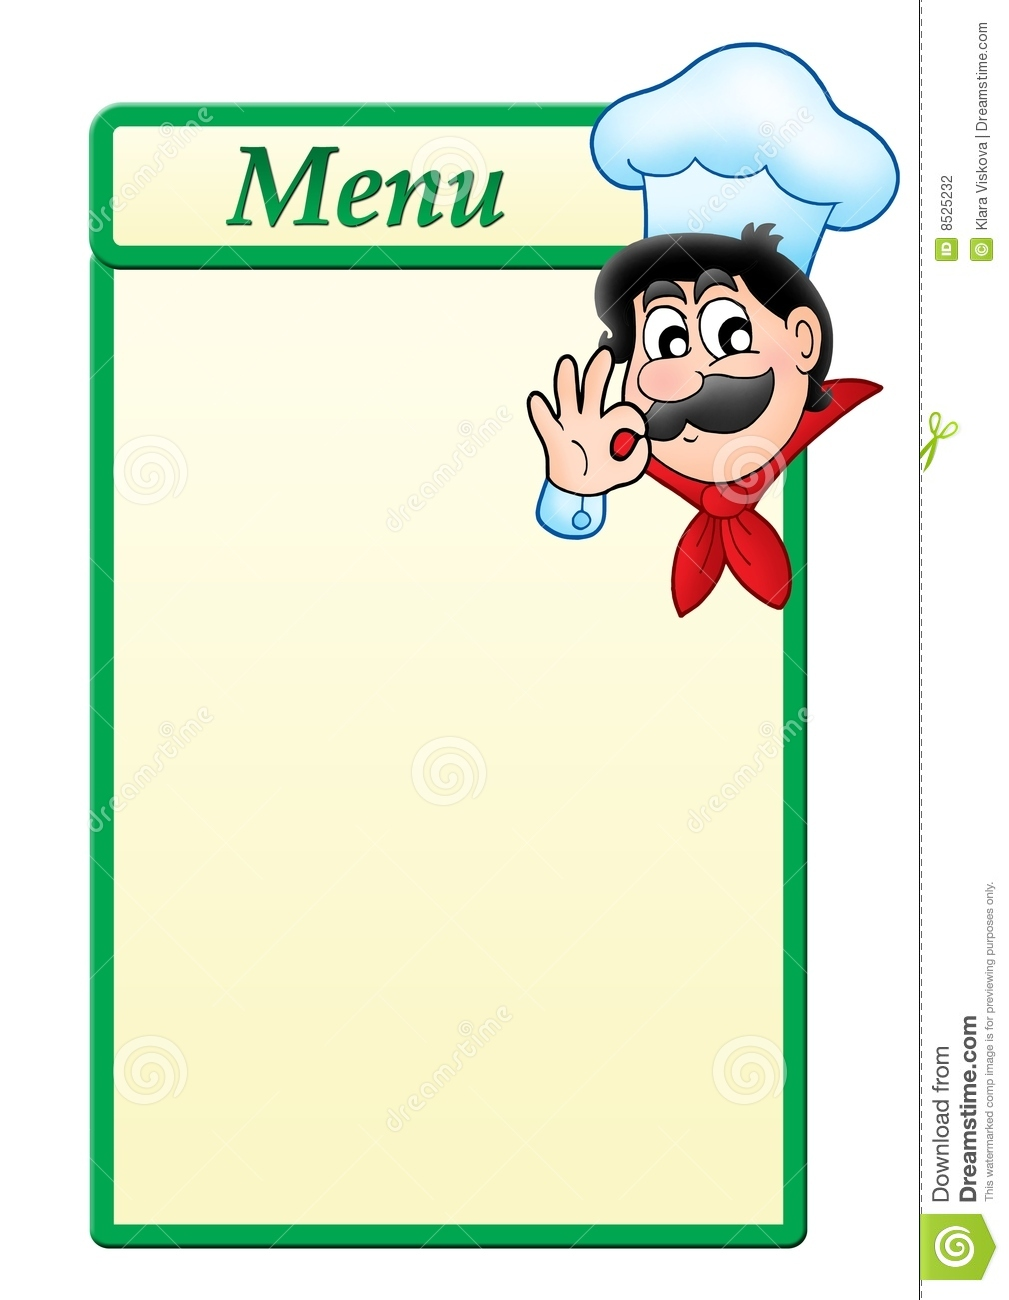 menu template with cartoon chef stock photography image 8525232. Black Bedroom Furniture Sets. Home Design Ideas